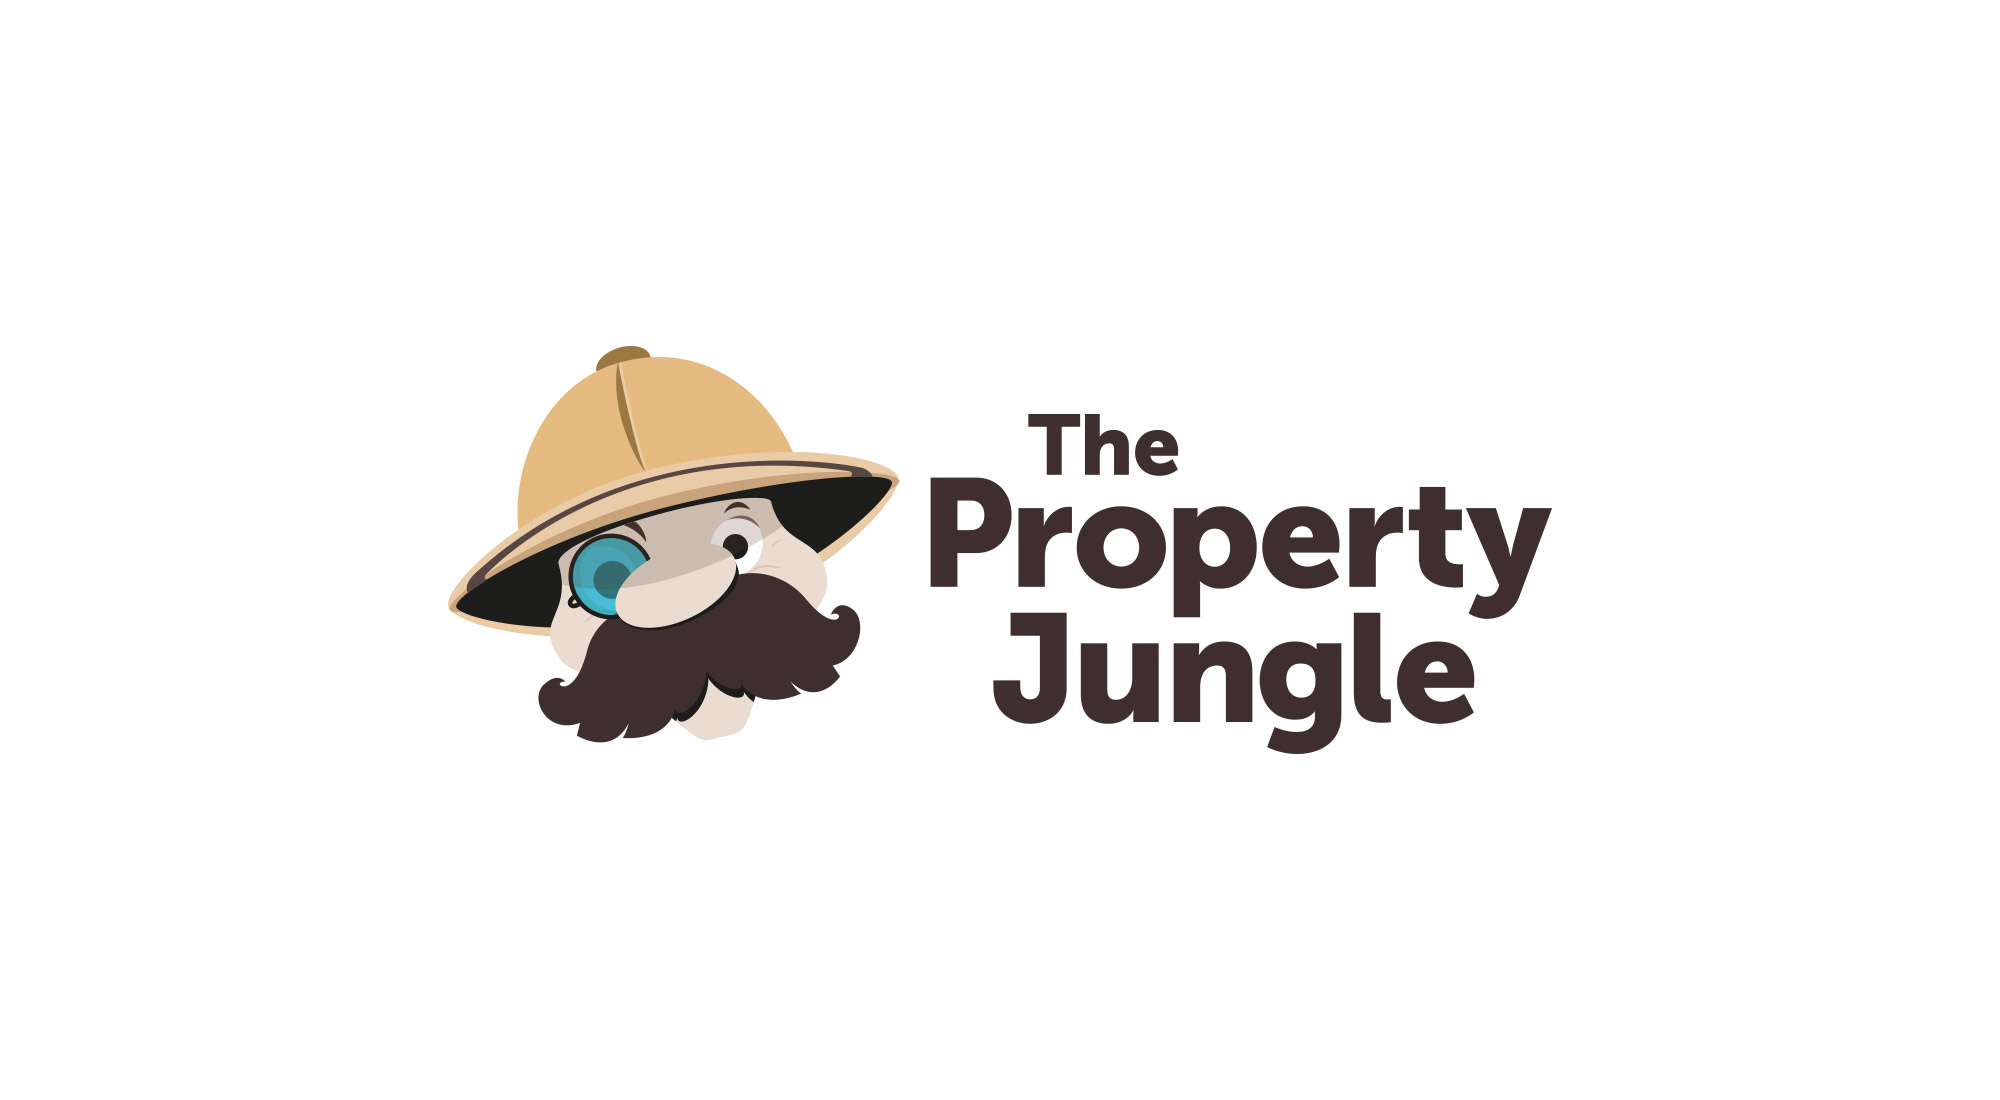 Property Jungle rebrand and logo design